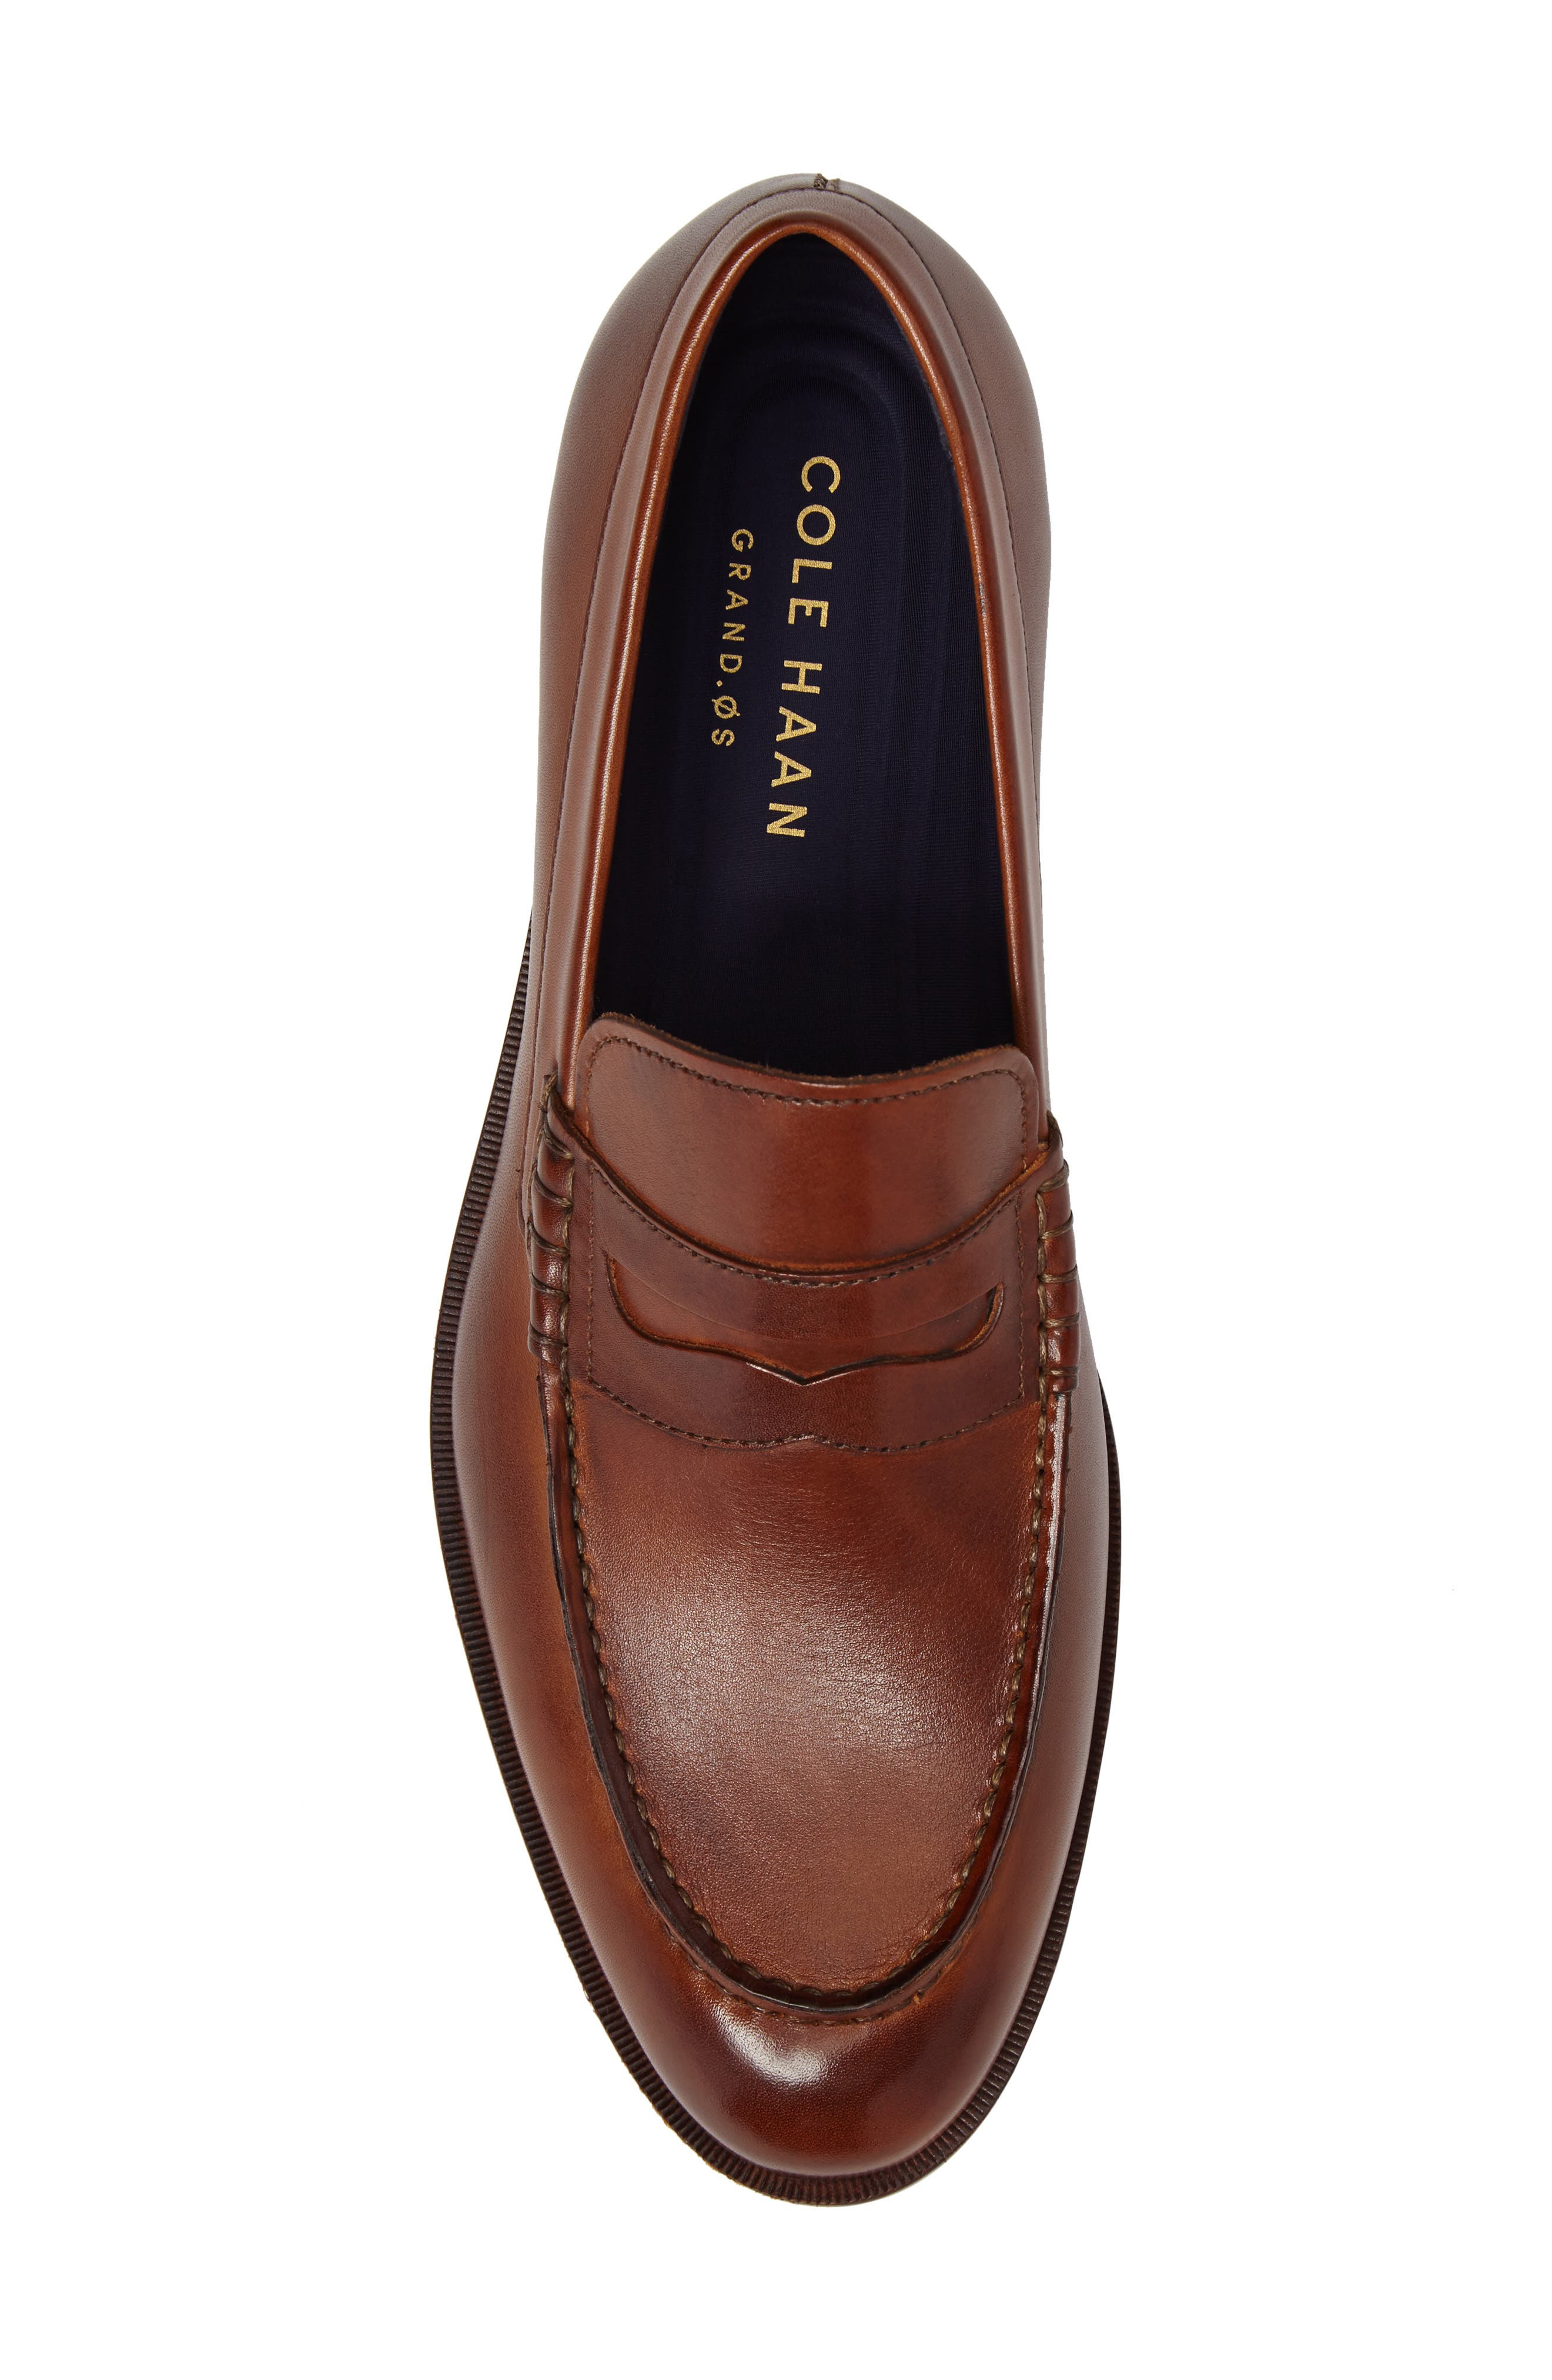 COLE HAAN, Harrison Grand Penny Loafer, Alternate thumbnail 5, color, COGNAC/ DARK NATURAL LEATHER